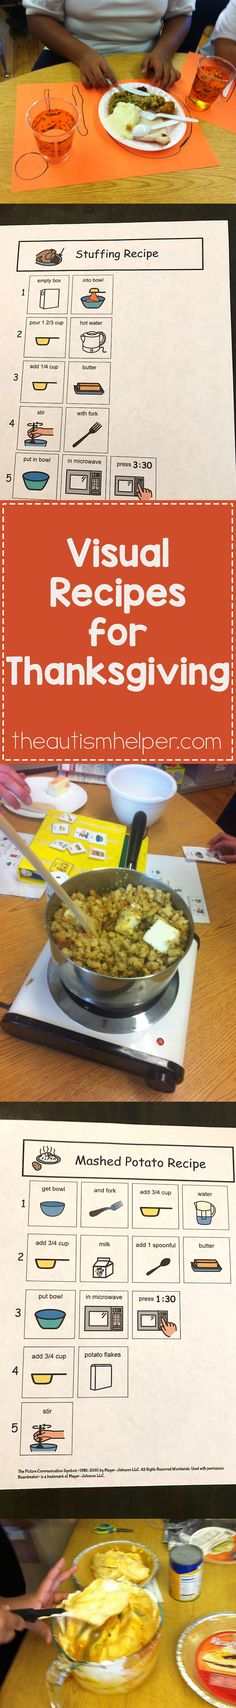 One of my classroom's favorite Thanksgiving traditions is cooking a big Thanksgiving feast! Over the years, we've streamlined the process to make it a little bit less chaotic but that dang pile of dishes after is just unavoidable! From theautismhelper.com #theautismhelper